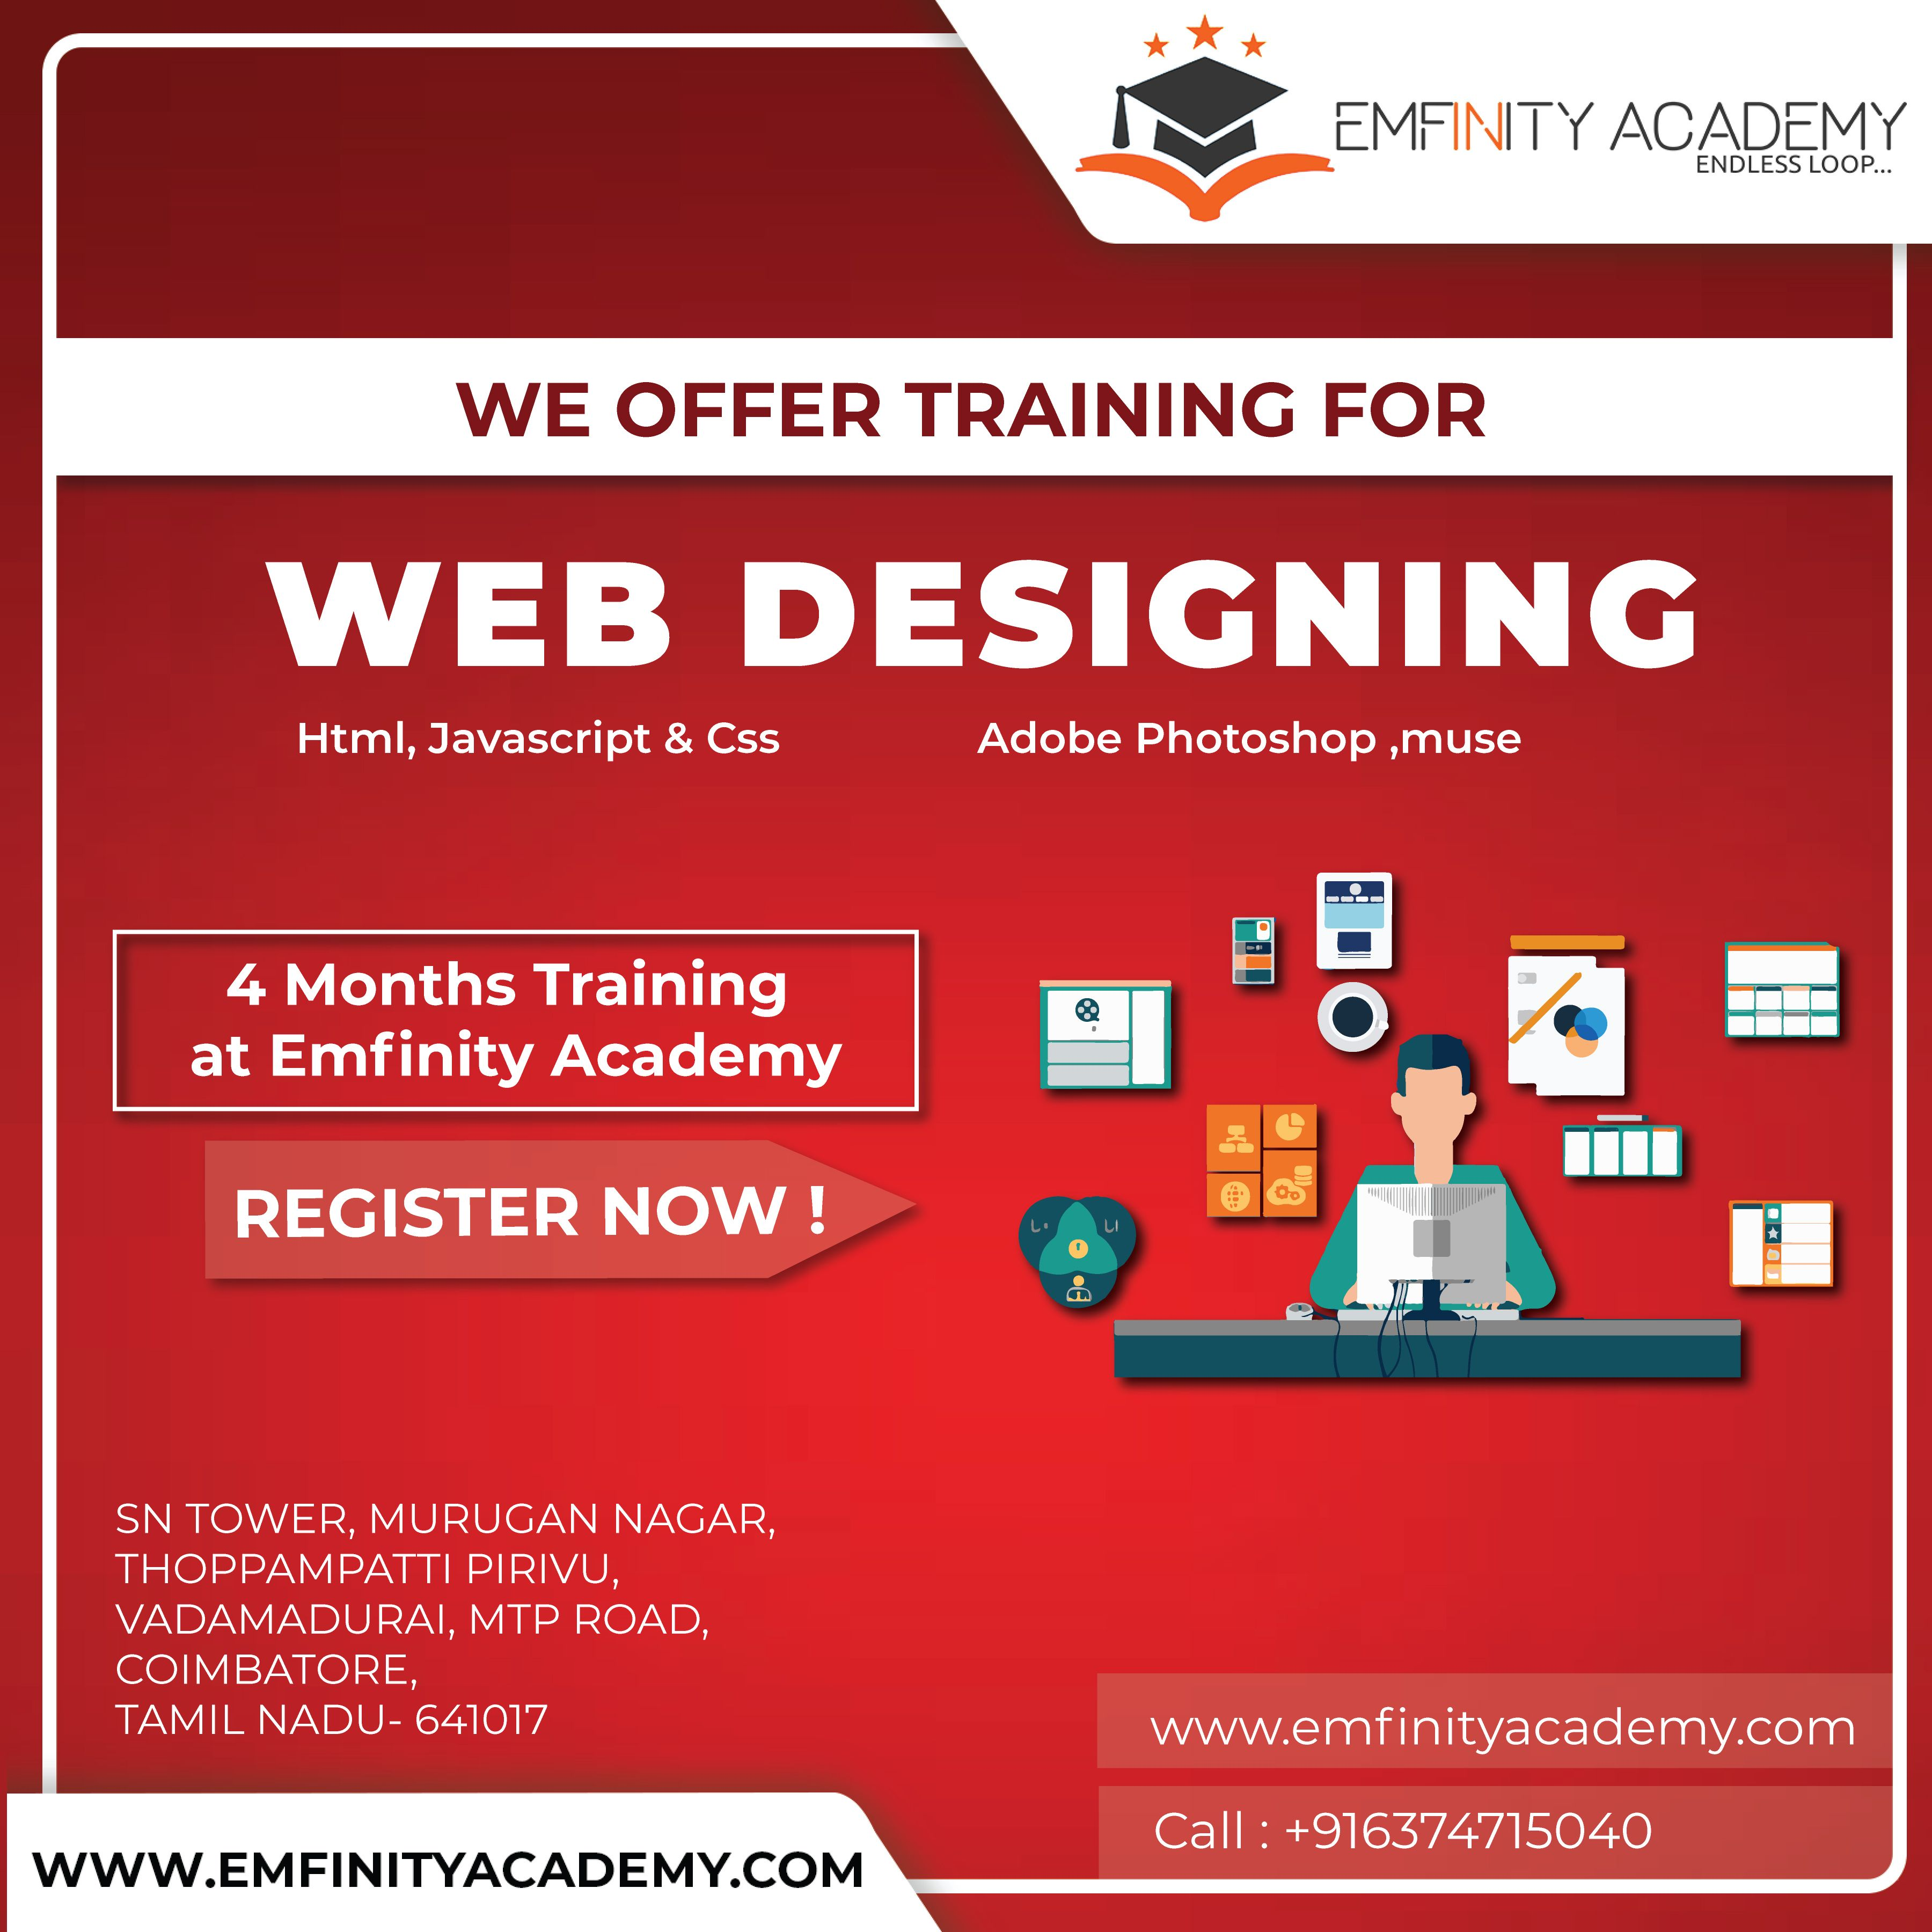 Web Designing Training Emfinity Academy Http Bit Ly 2esjp5n Course Academy Html Css Joomla Magento Web Design Digital Marketing Advanced Training